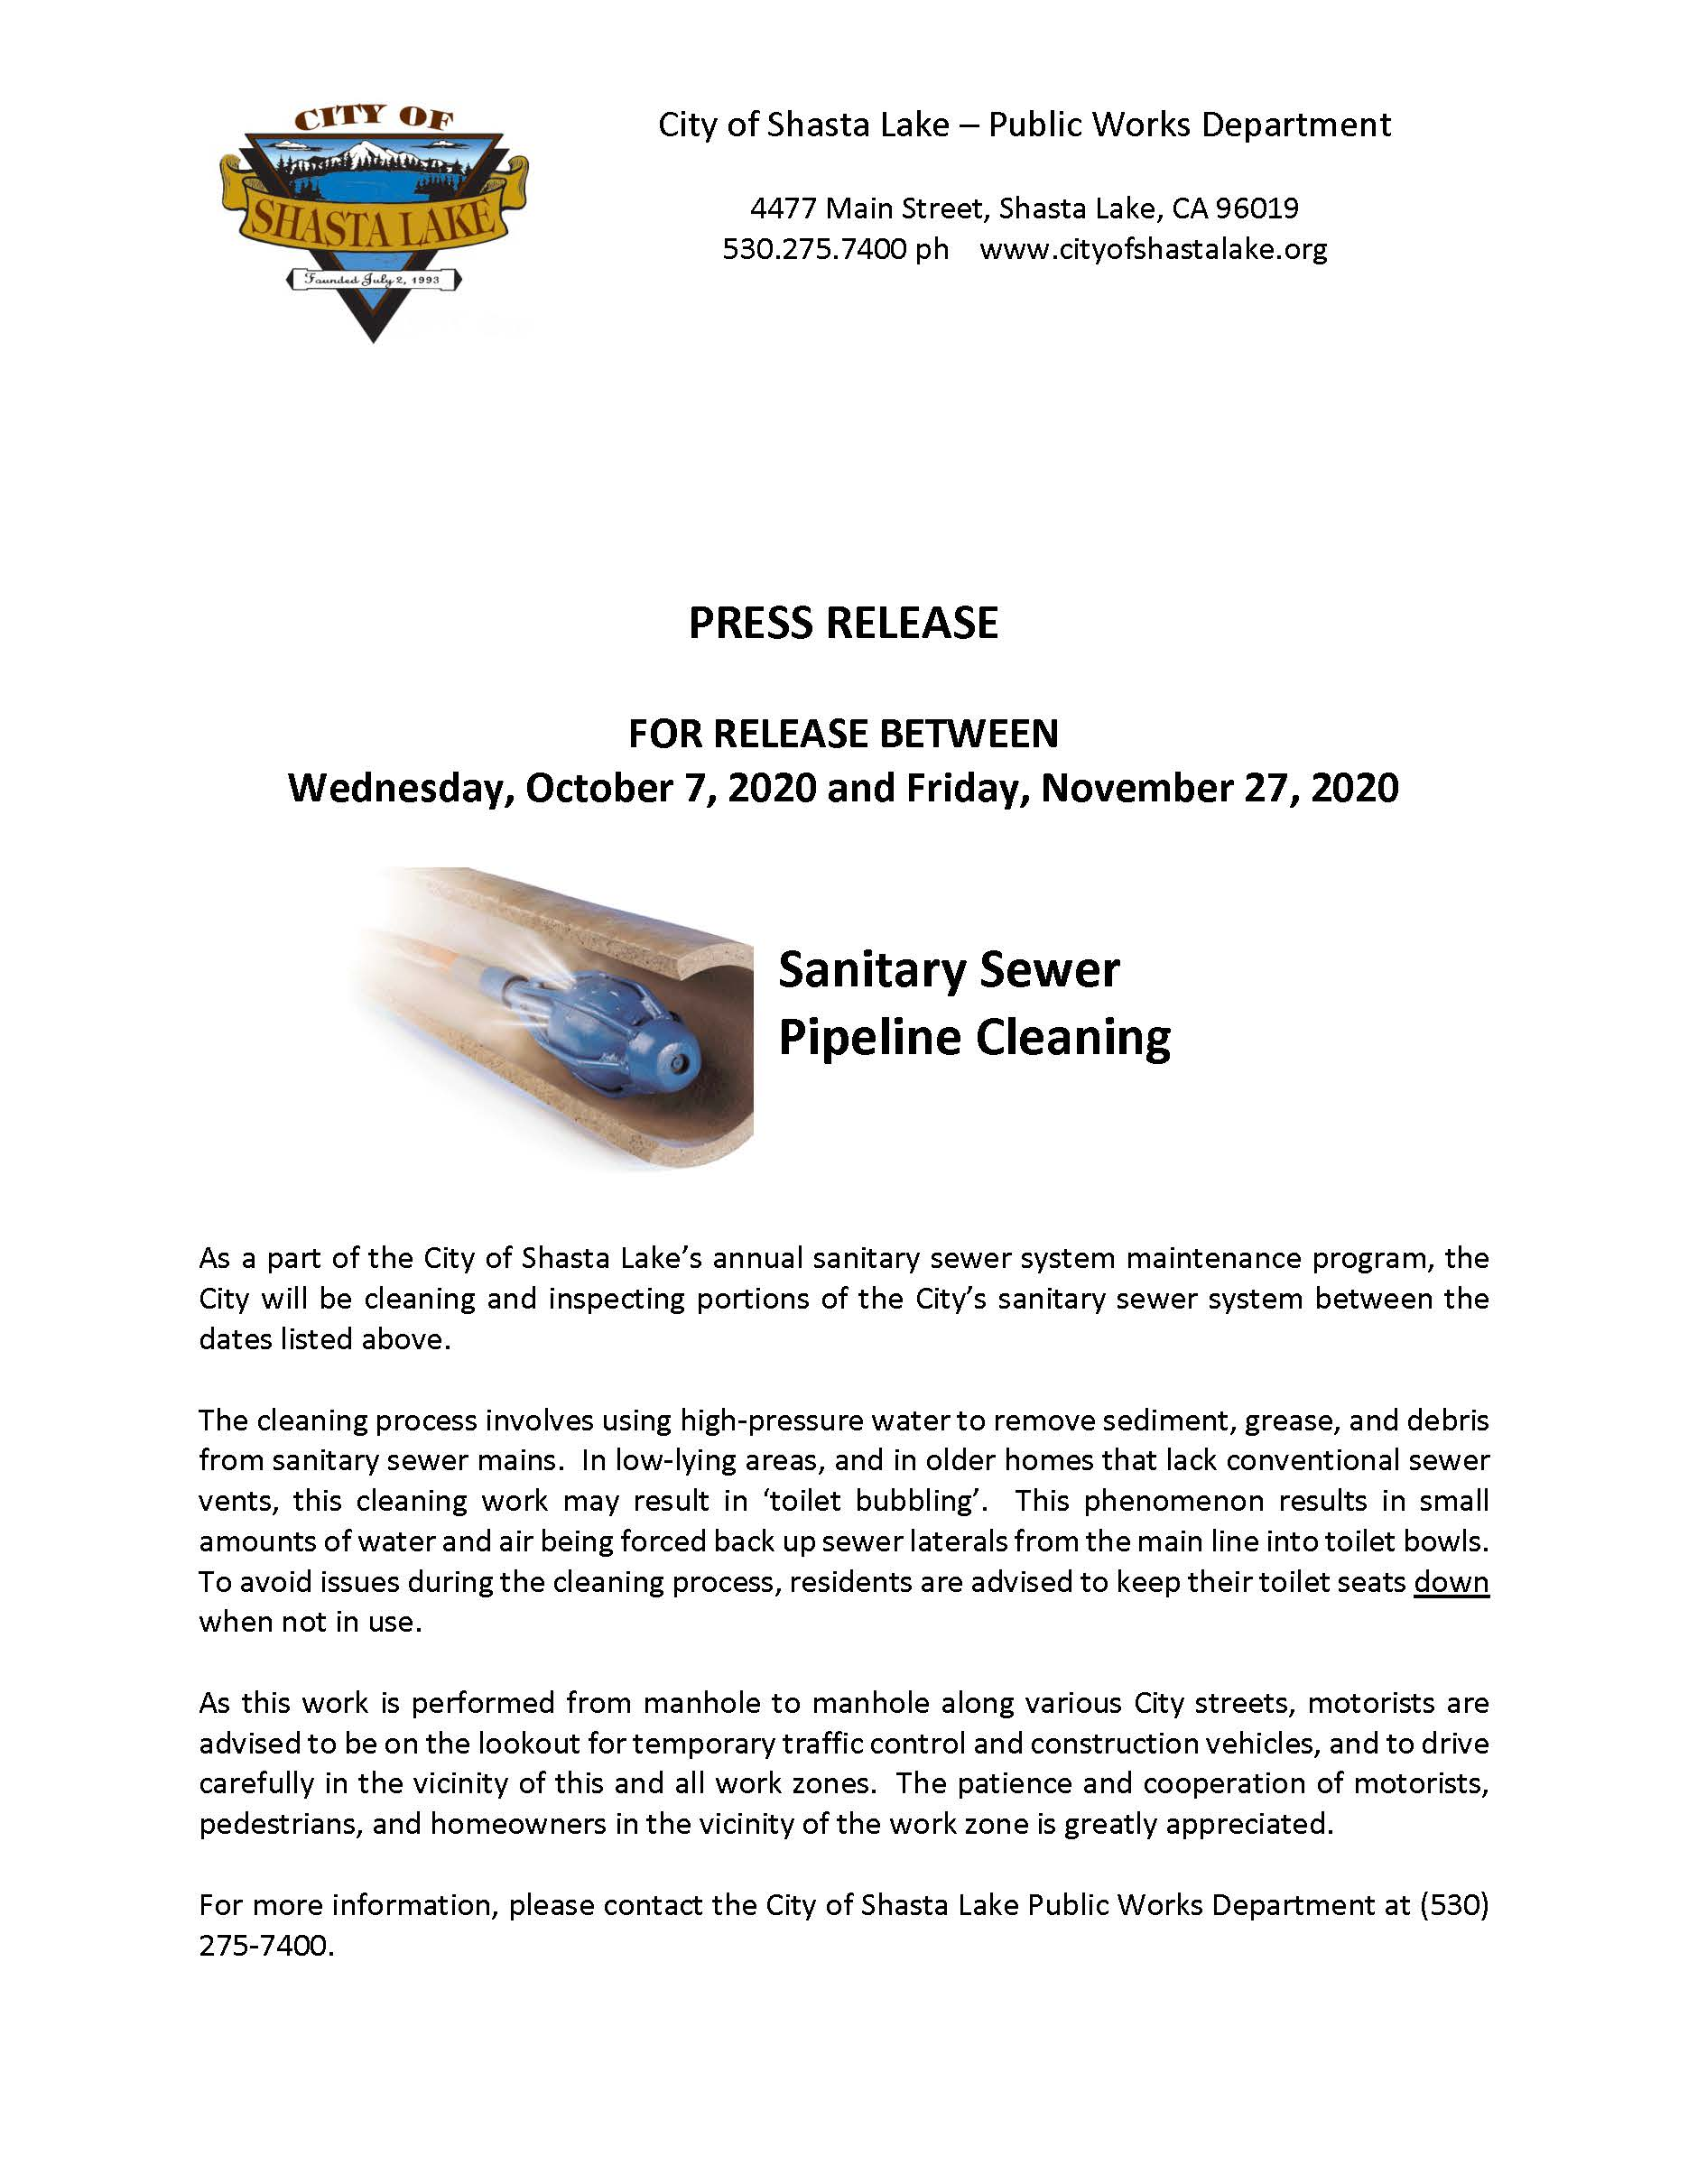 Press Release - Pipeline Cleaning 10-06-20